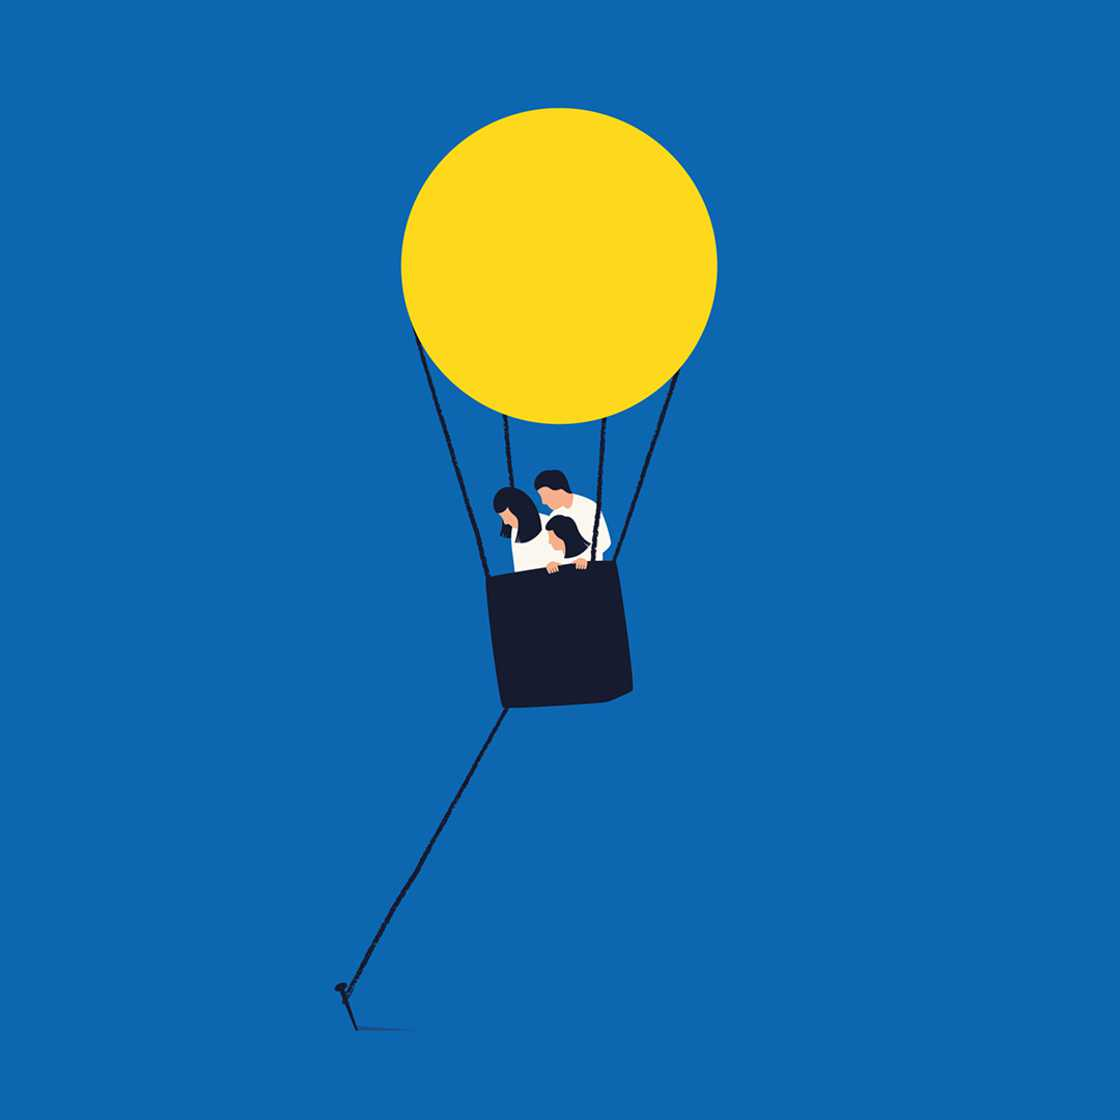 Les illustrations satiriques et minimalistes de Francesco Ciccolella